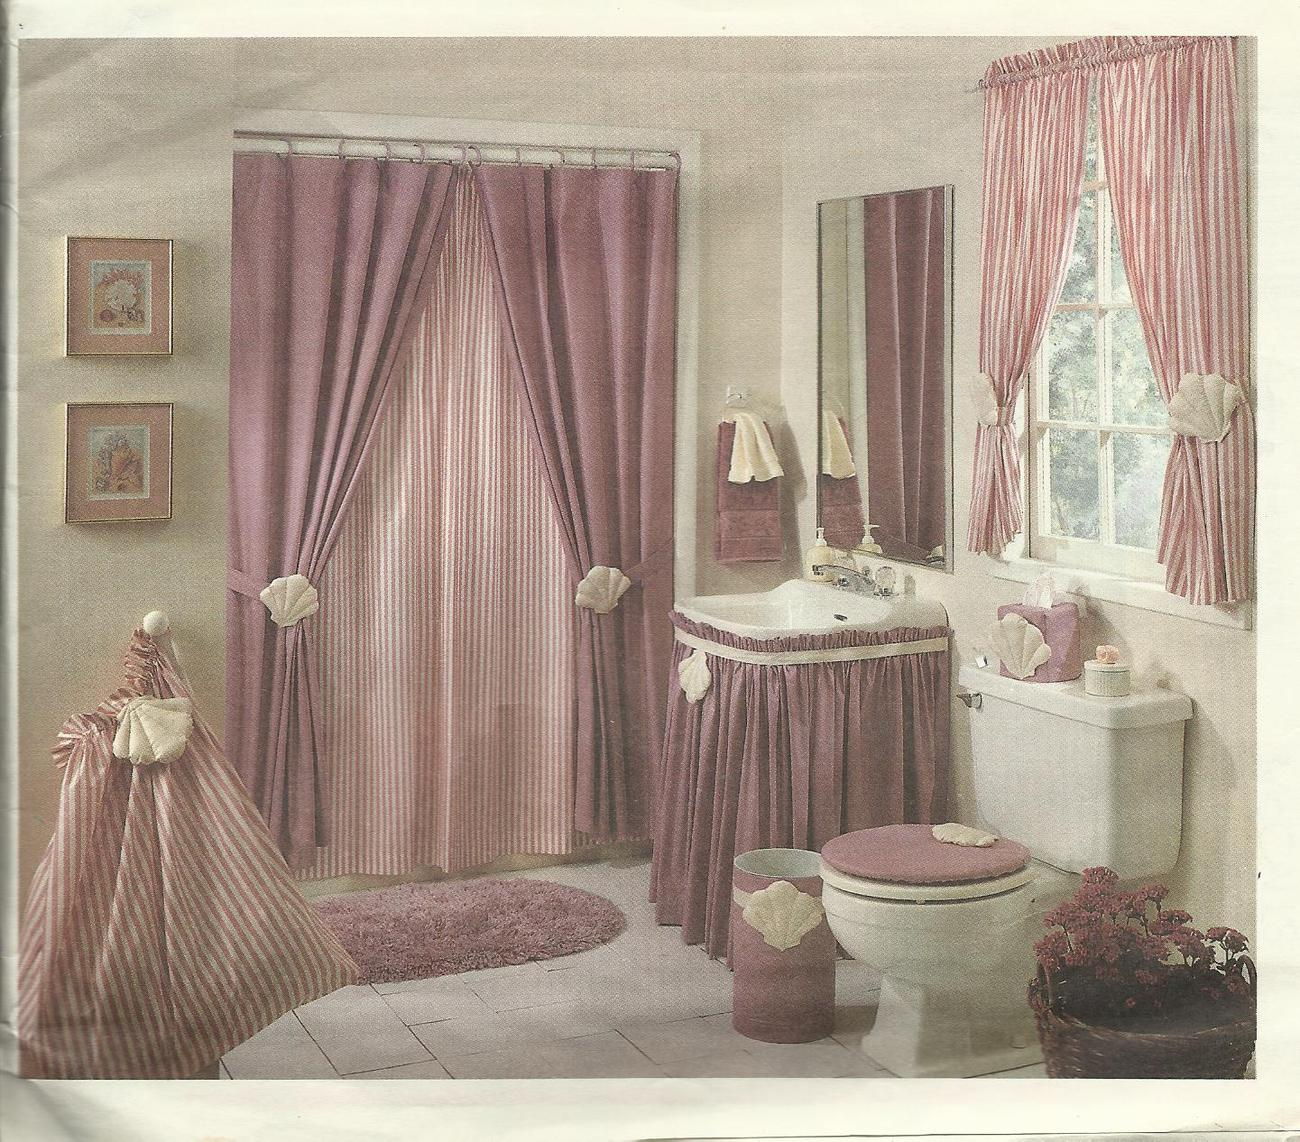 McCall's 4276 Pattern Bathroom Accessories shower  window curtain lid cover